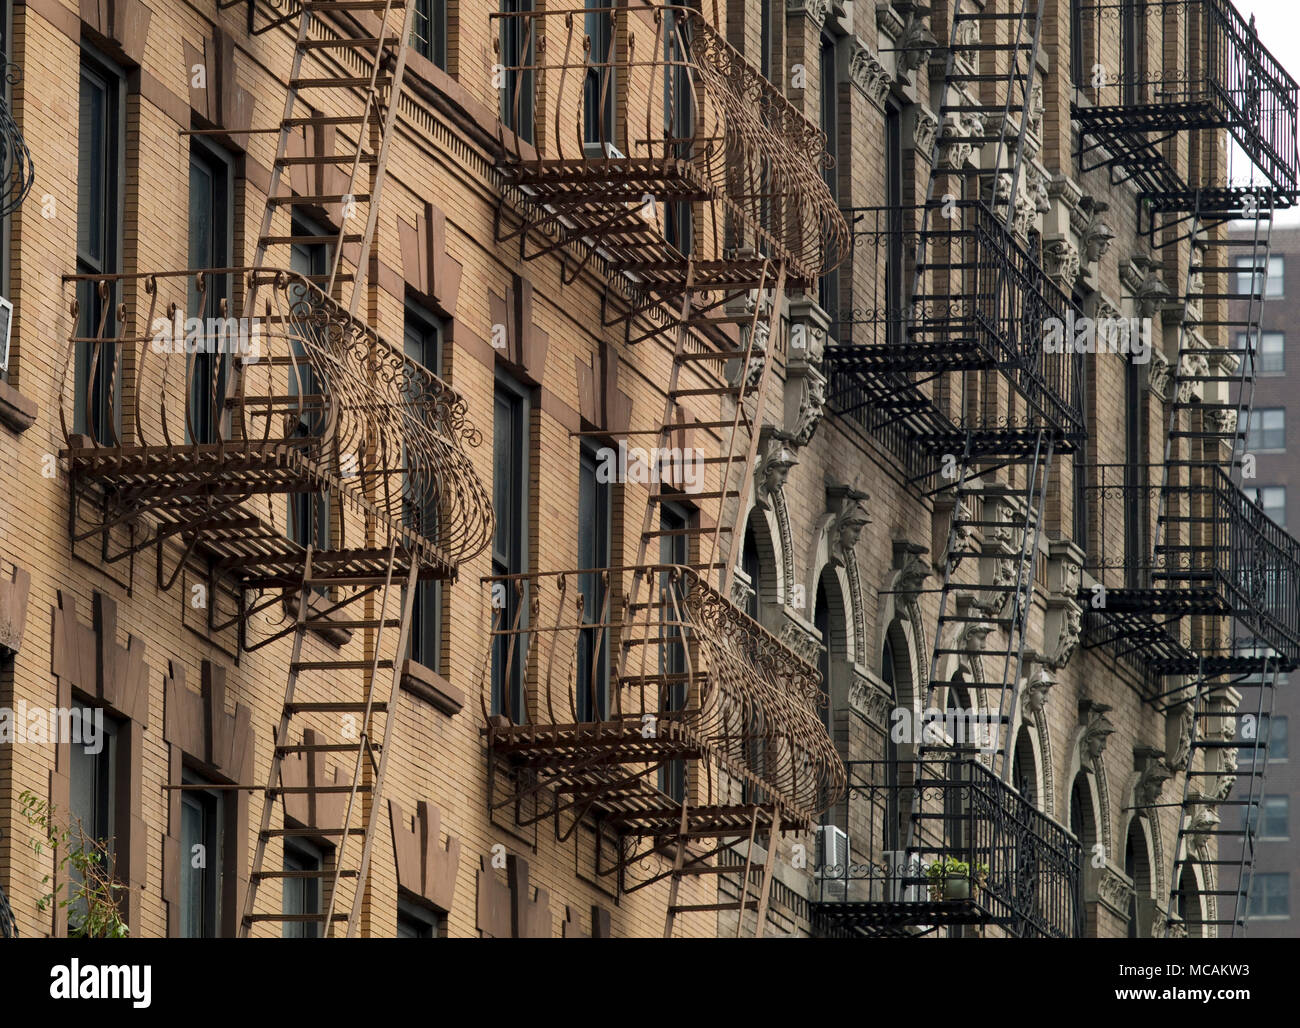 Fire escapes are most often found on multiple-story residential buildings, such as apartment buildings. At one time, they were a very important aspect of fire safety for all new construction in urban areas; more recently, however, they have fallen out of common use. - Stock Image